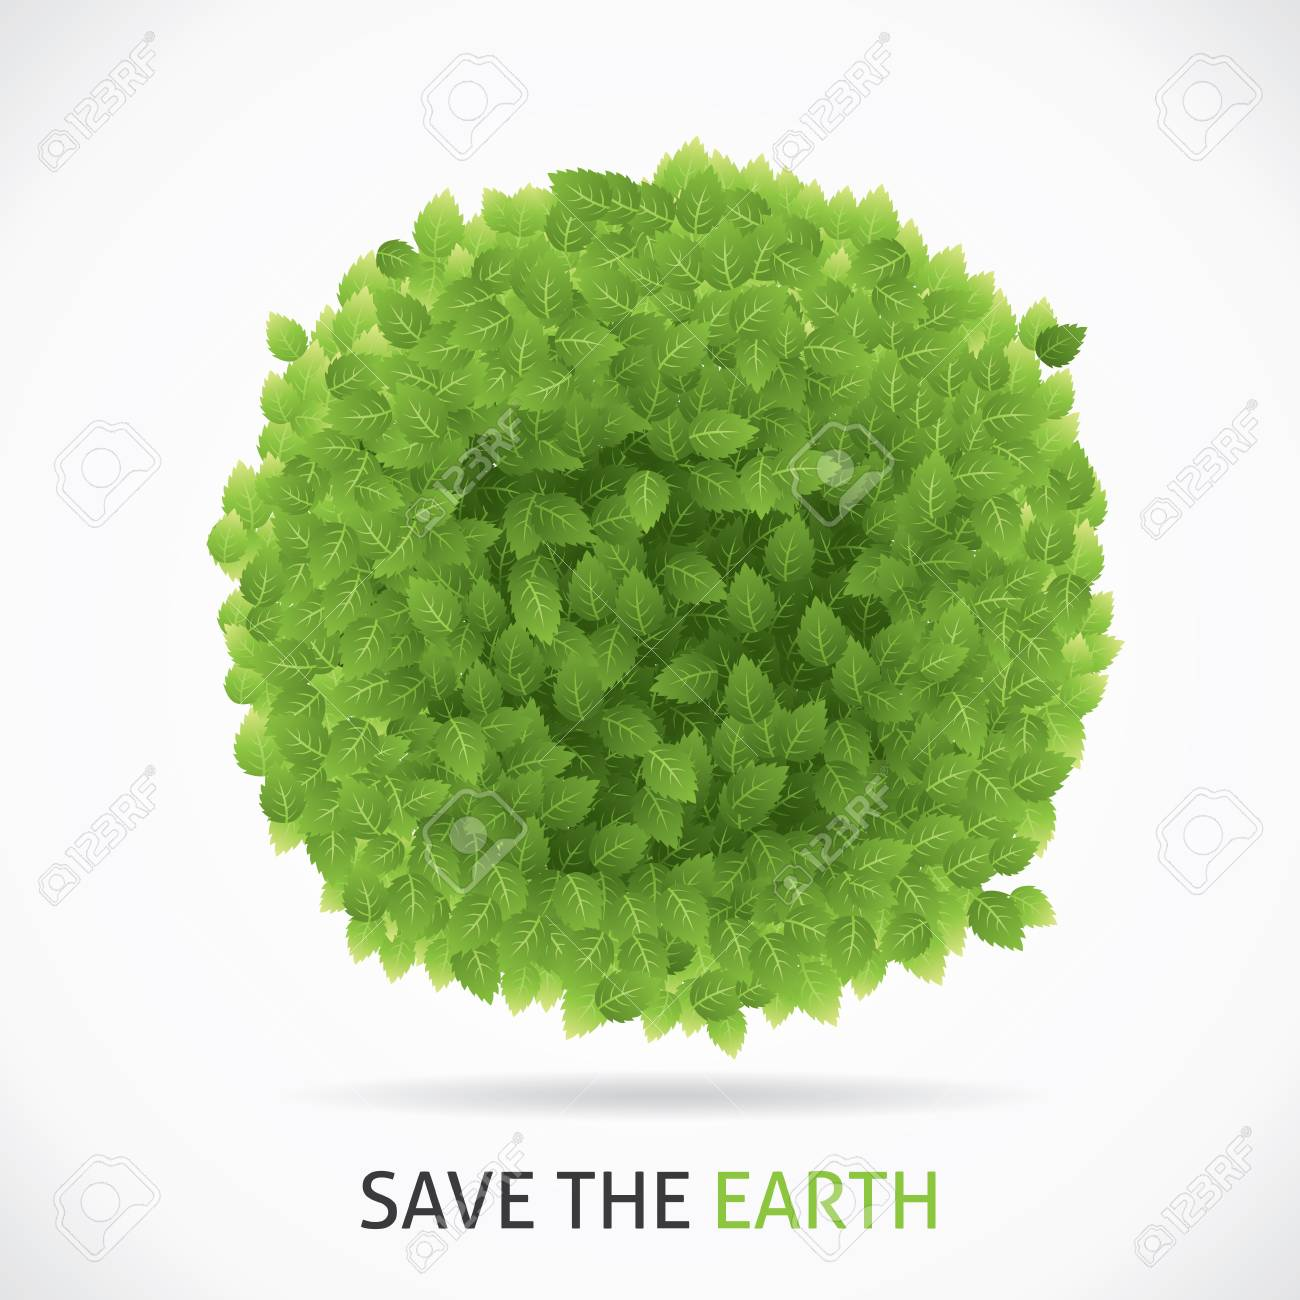 Save the earth Stock Vector - 20010486